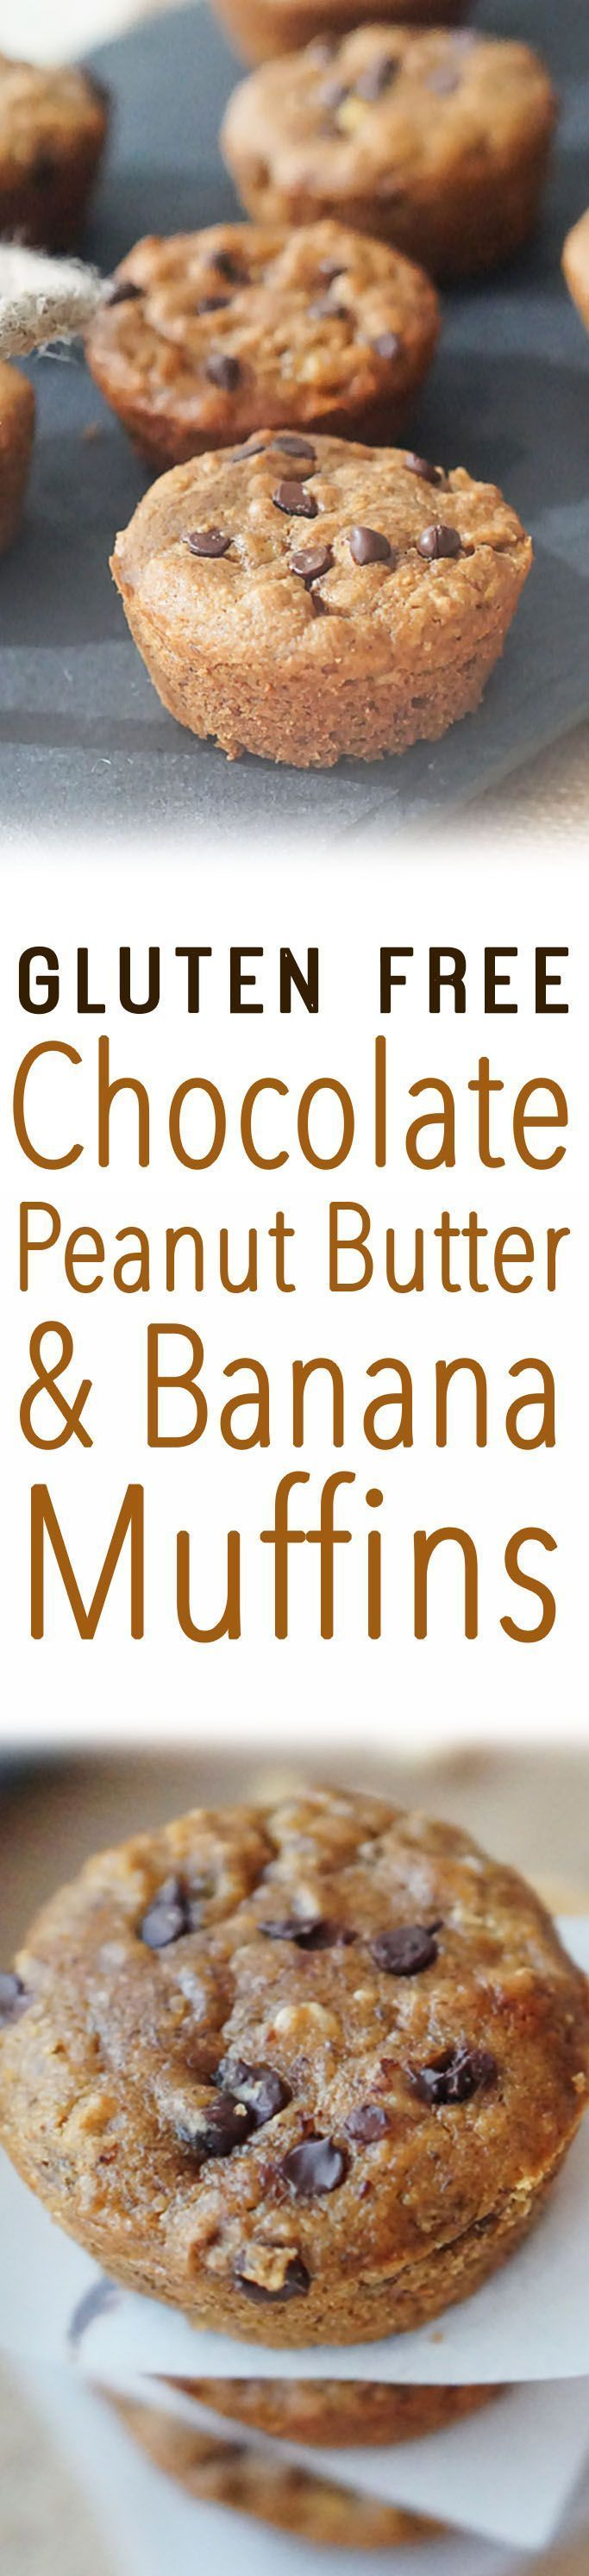 These gluten free dairy-free muffins satisfy every peanut butter/banana/chocolate lover (this girl!), yet are surprisingly low in sugar and incredibly satisfying.